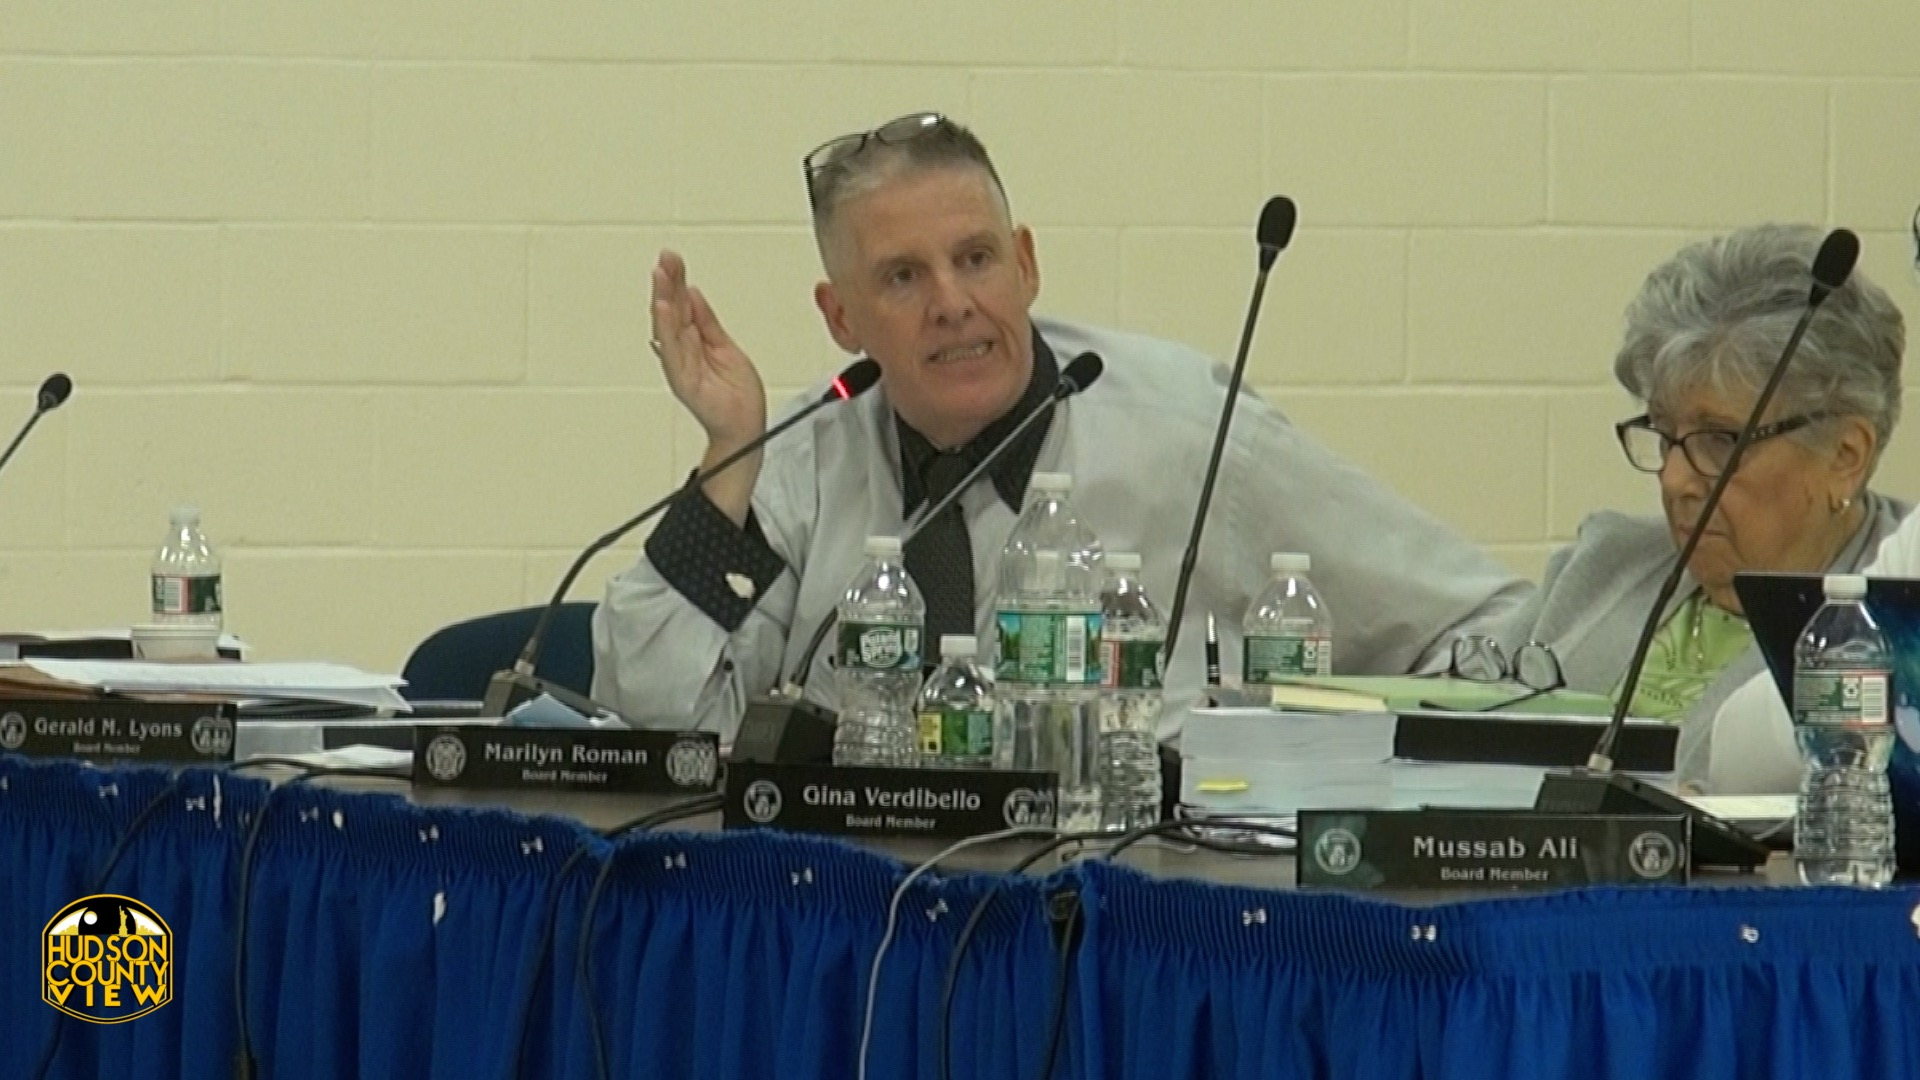 Homophobic' remarks roil Jersey City BOE after resident questions